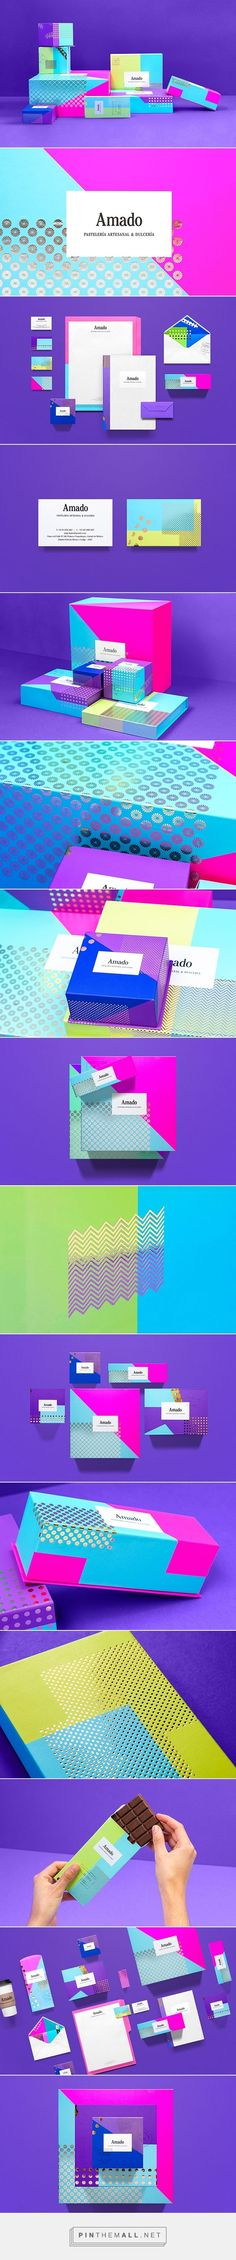 Amado Branding by Hyatt on Behance | Fivestar Branding – Design and Branding Agency & Inspiration Gallery